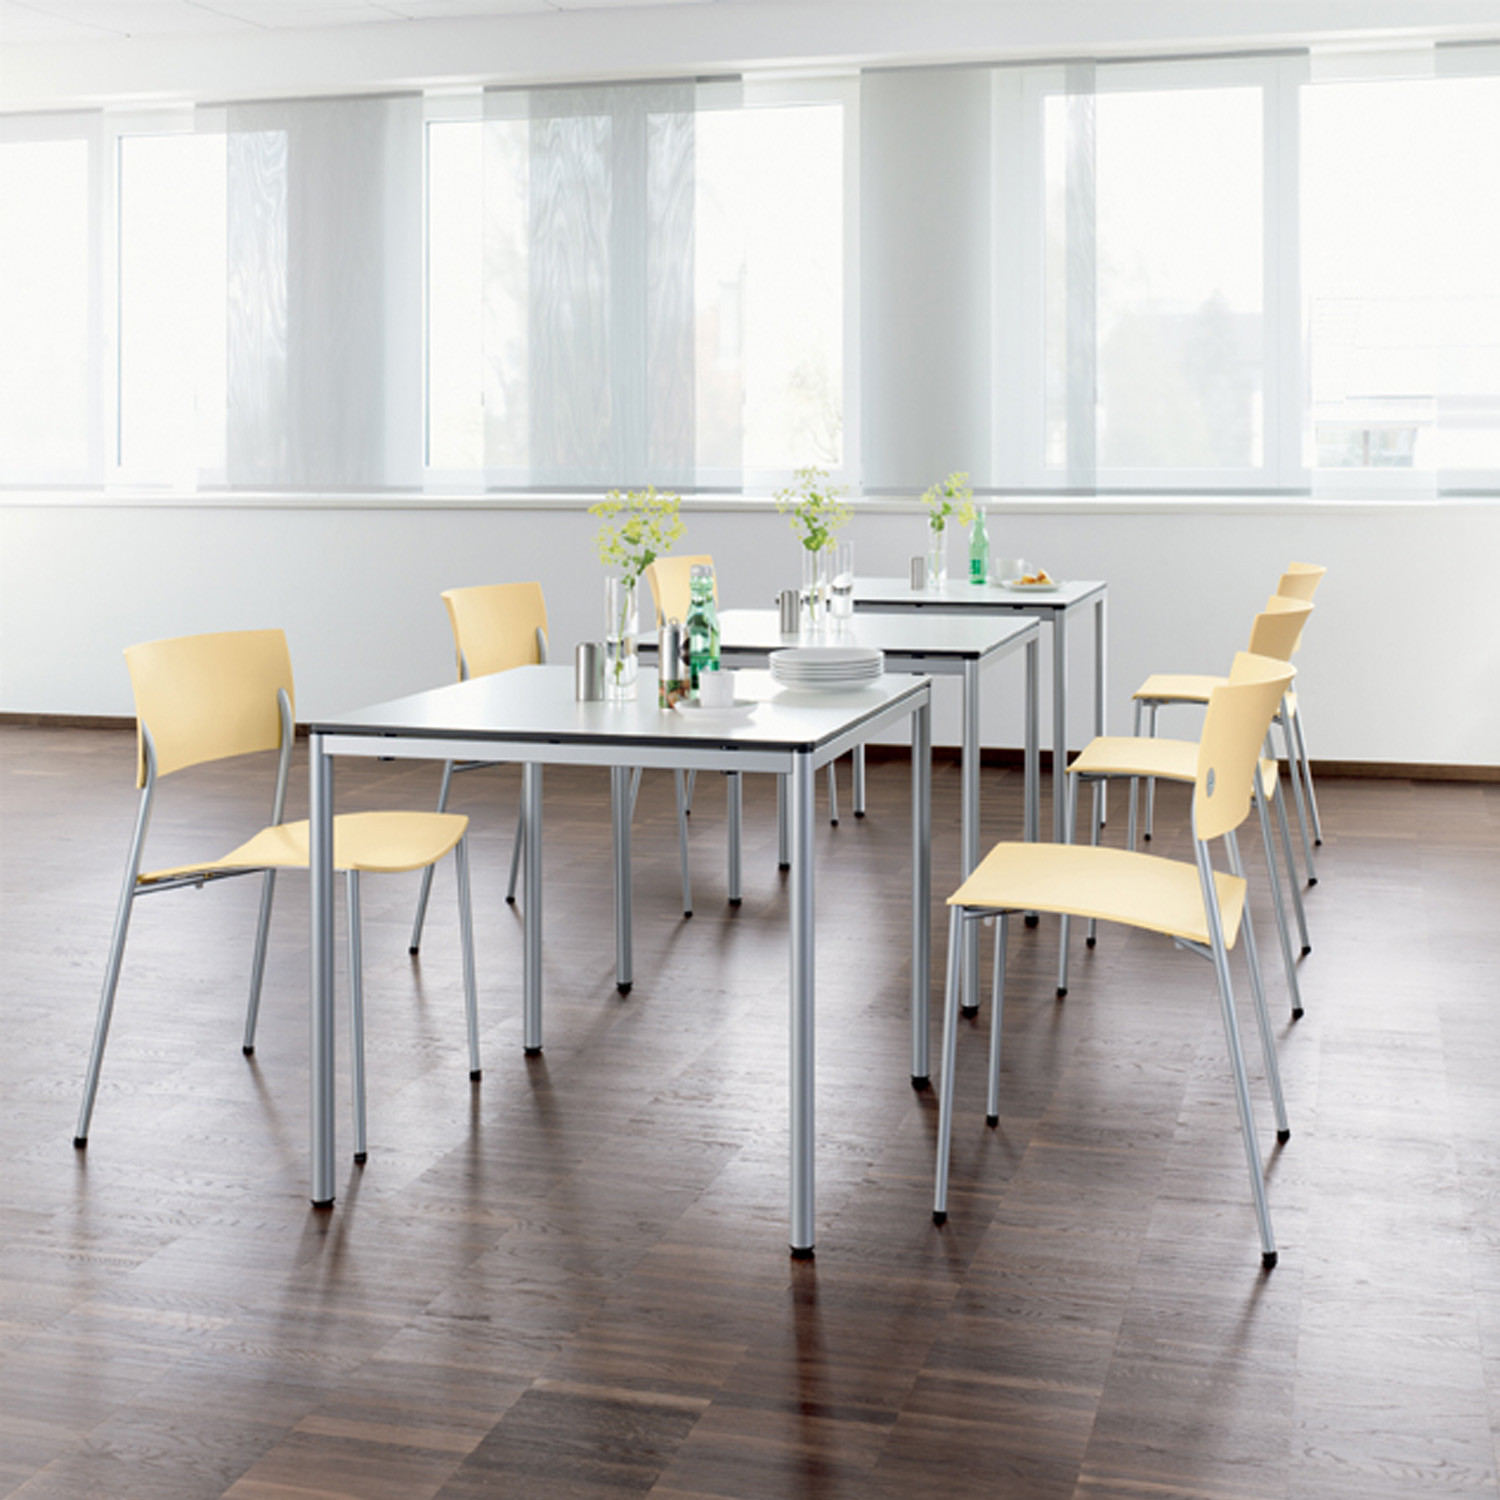 Clip Table by Wiesner Hager